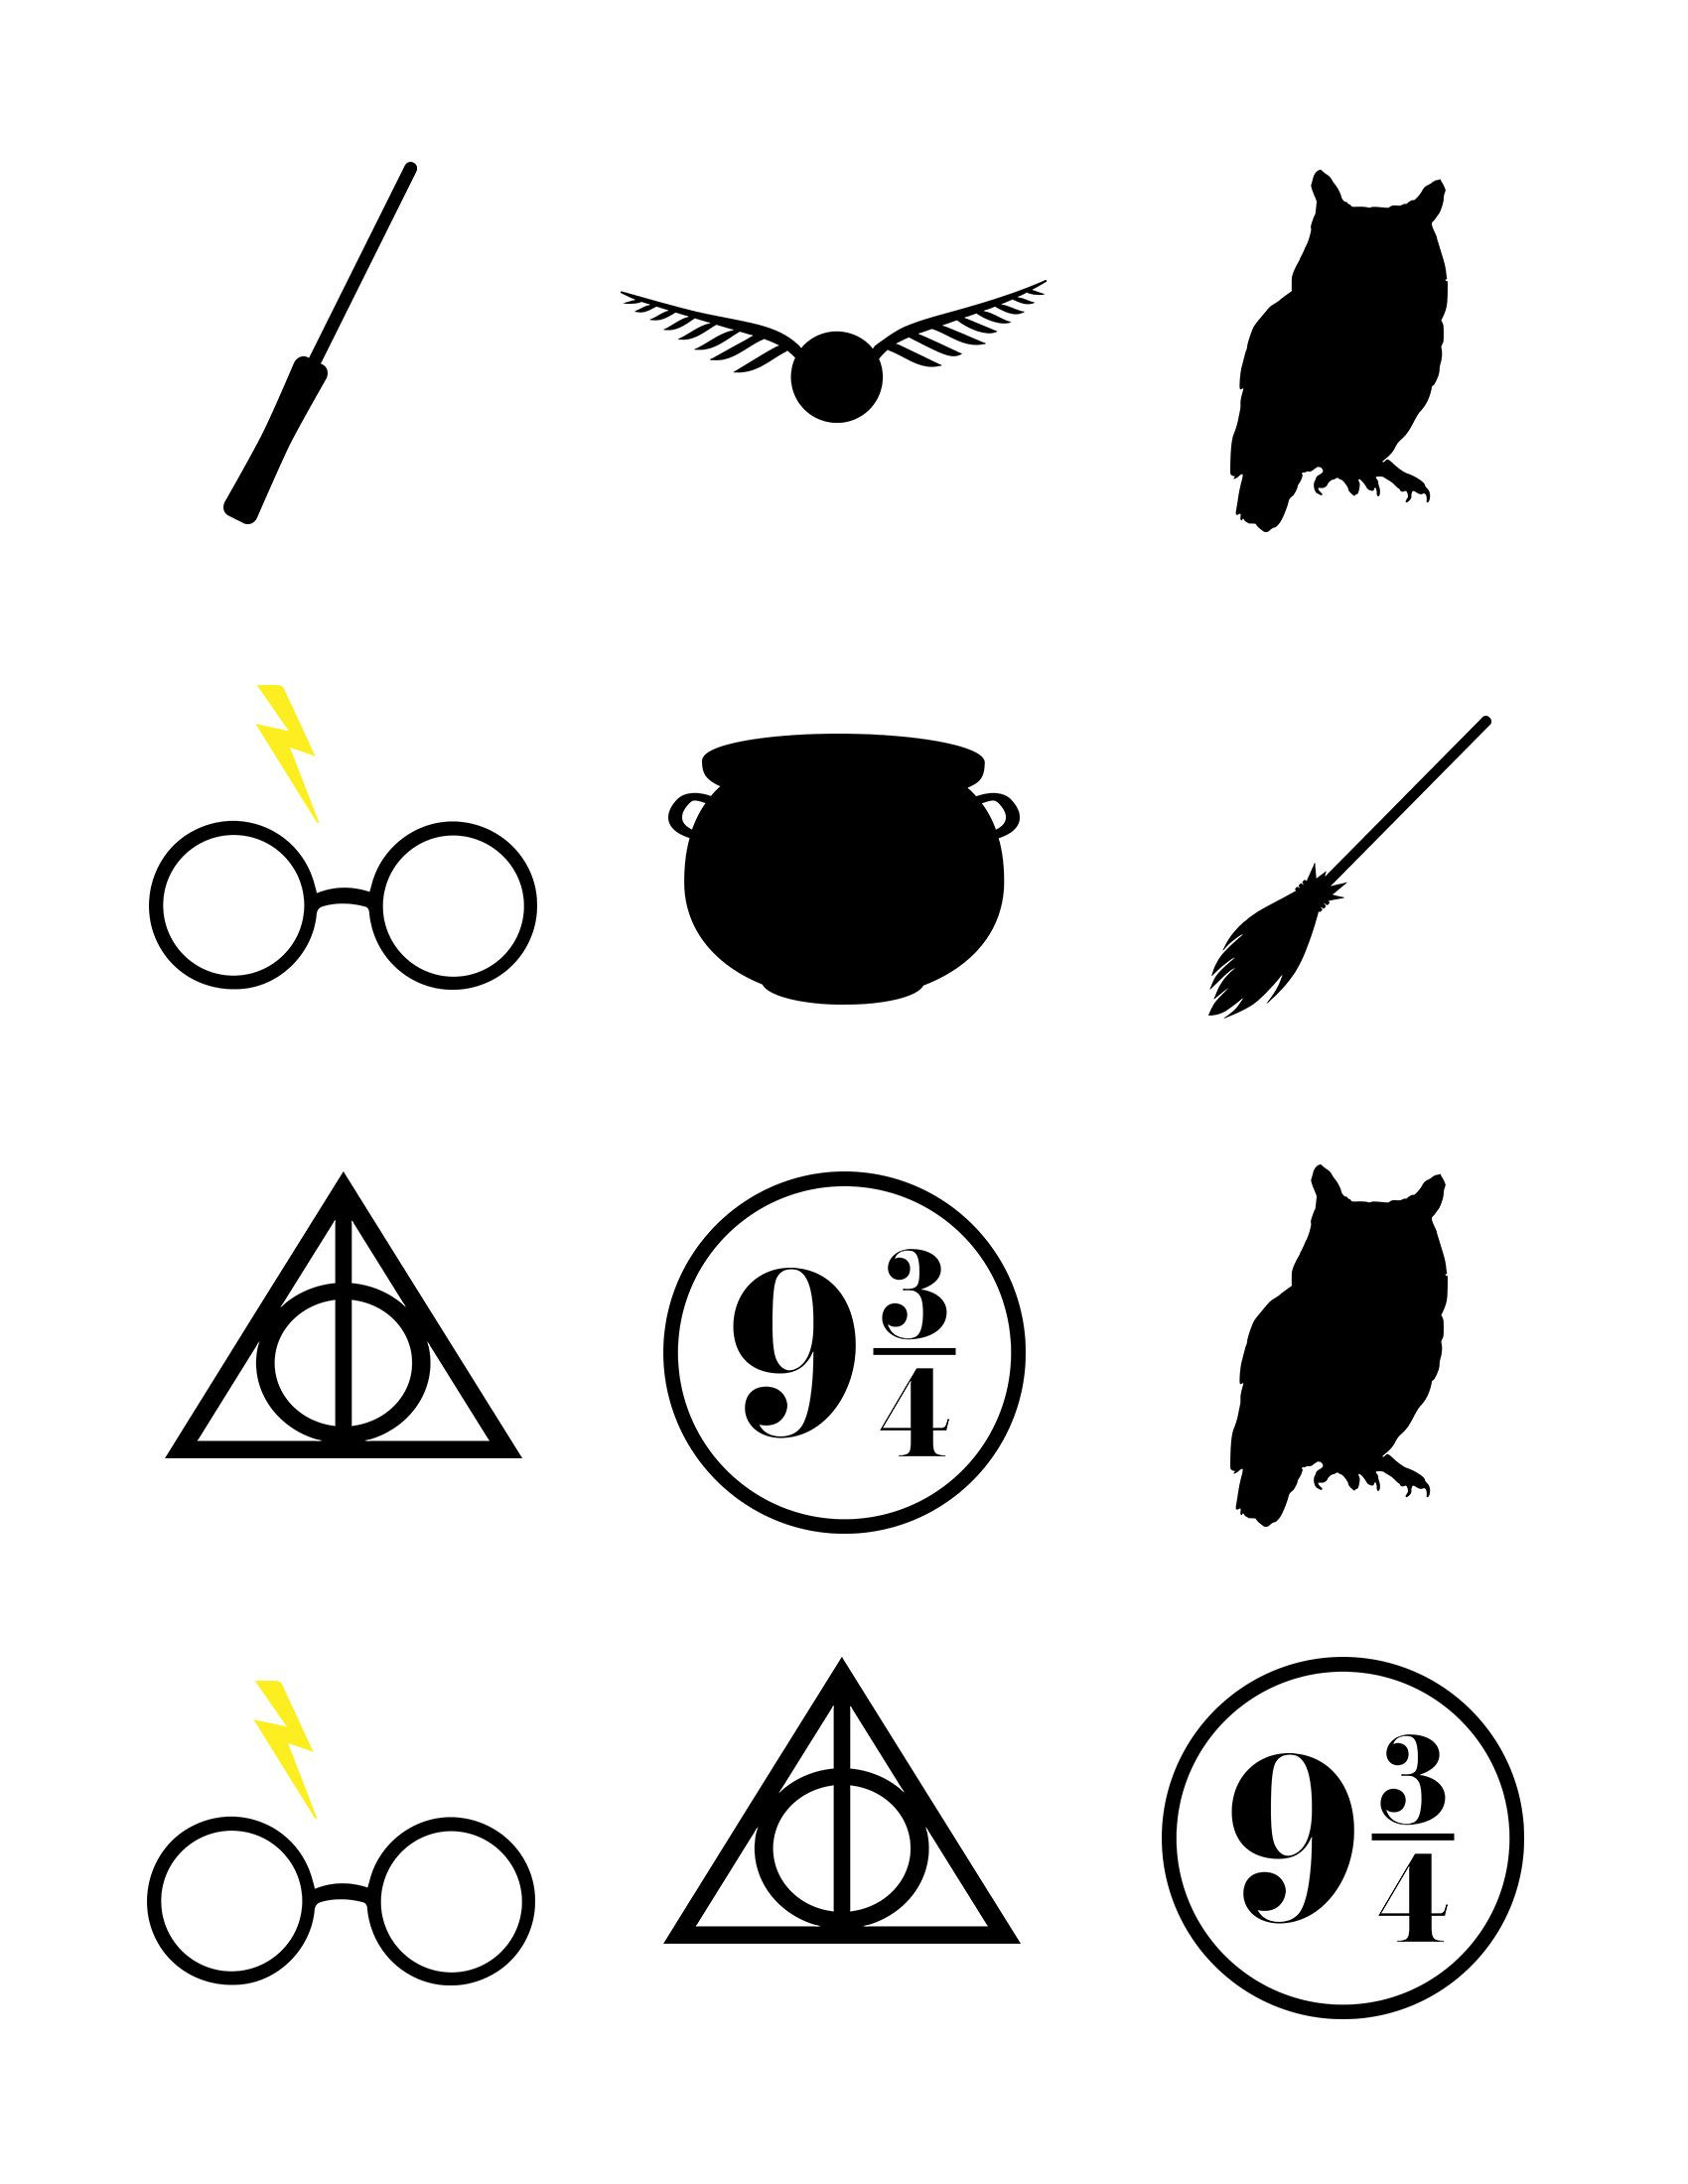 Harry Potter Baby Shower Ideas & Free Printables   Harry Potter - Free Printable Harry Potter Clip Art